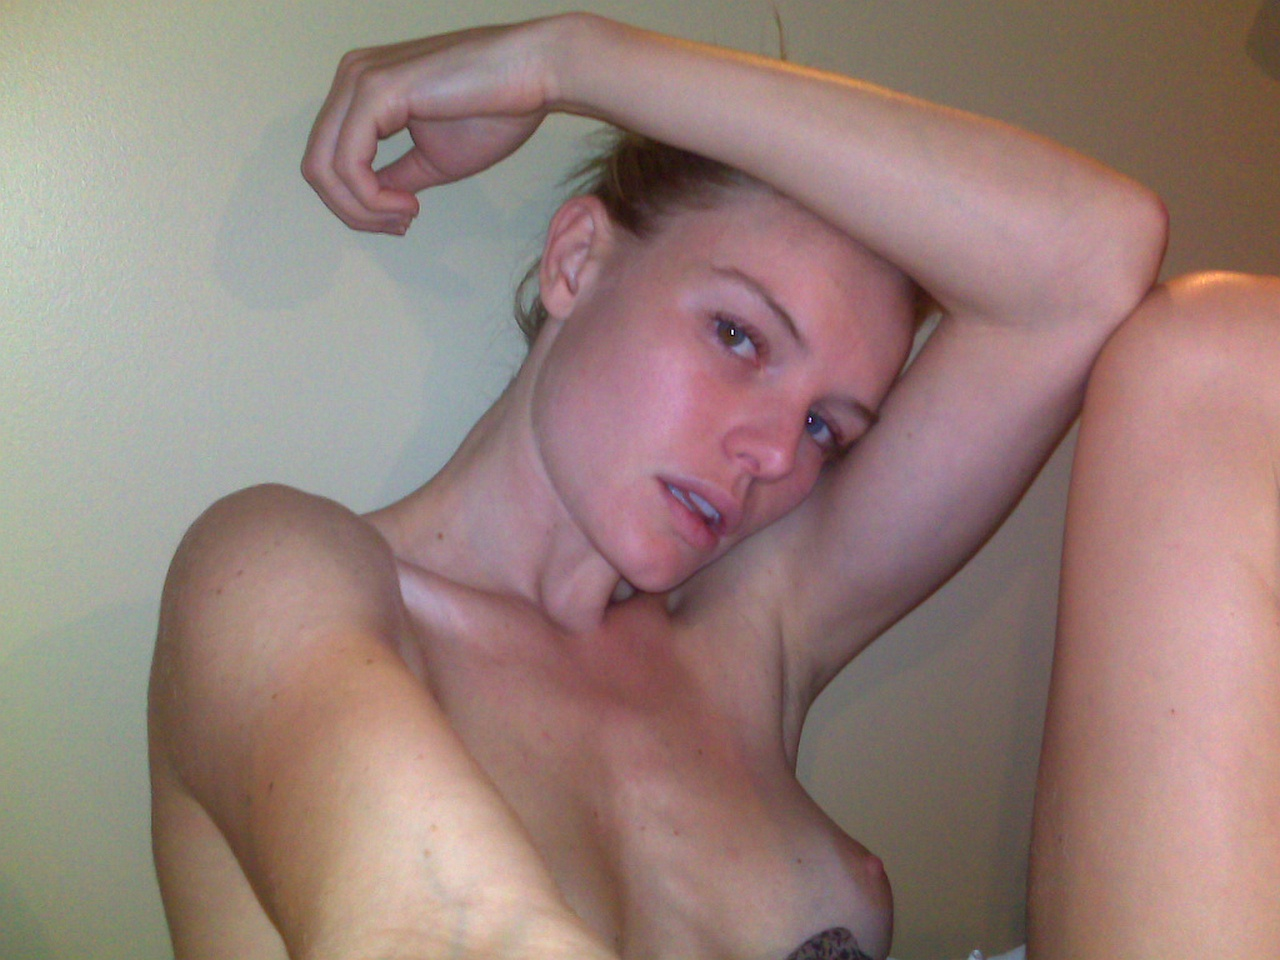 Kate bosworth naked what